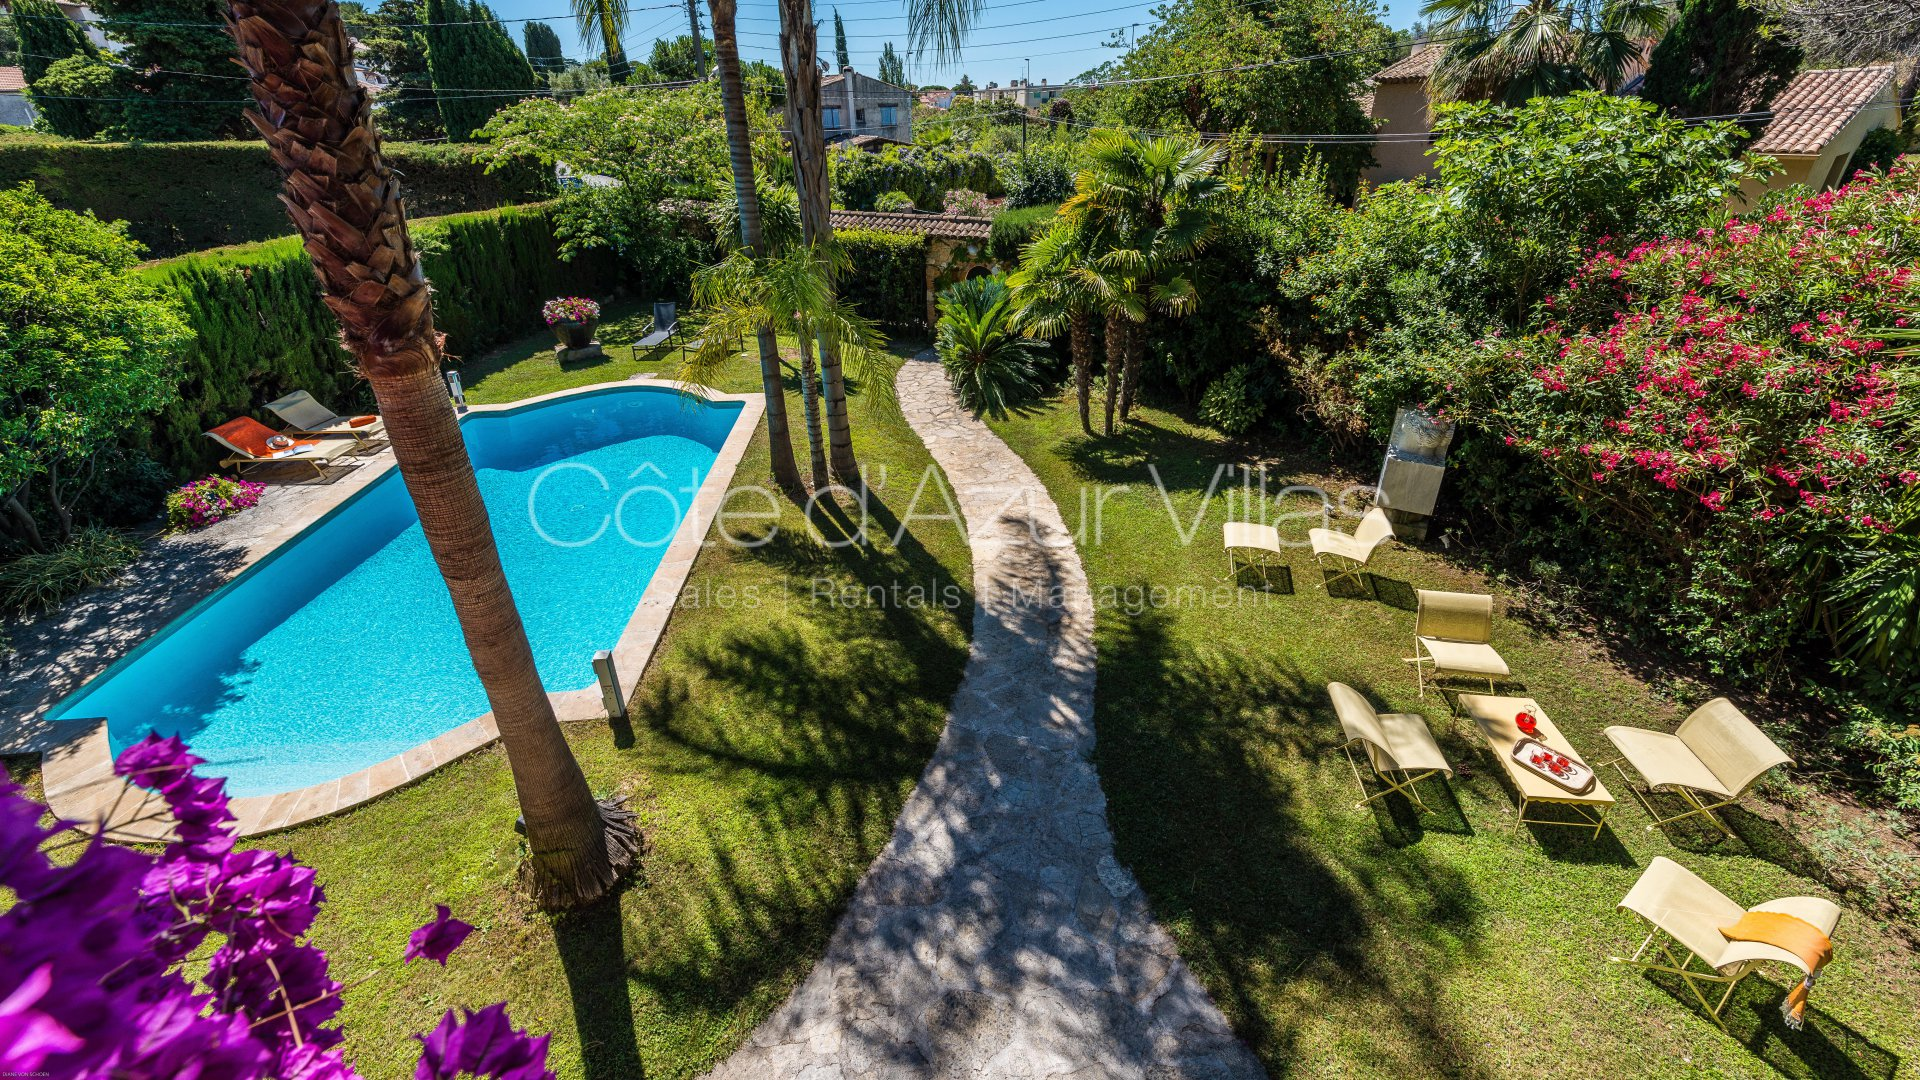 Juan les Pins - Charming Stone Property - Possible Guest House